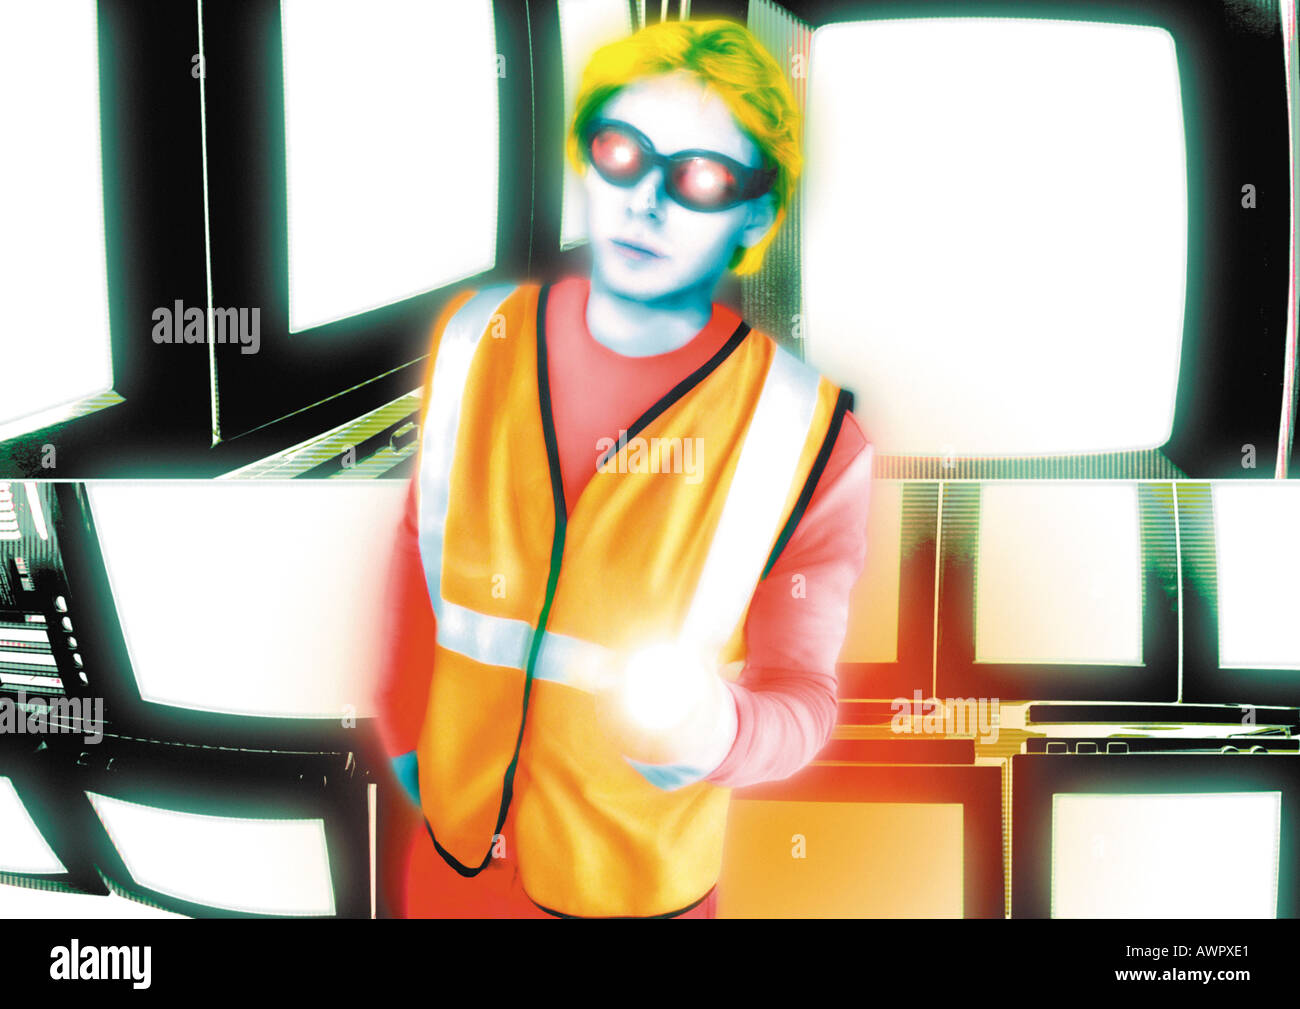 Young crossing guard standing in front of monitors, digital composite. - Stock Image